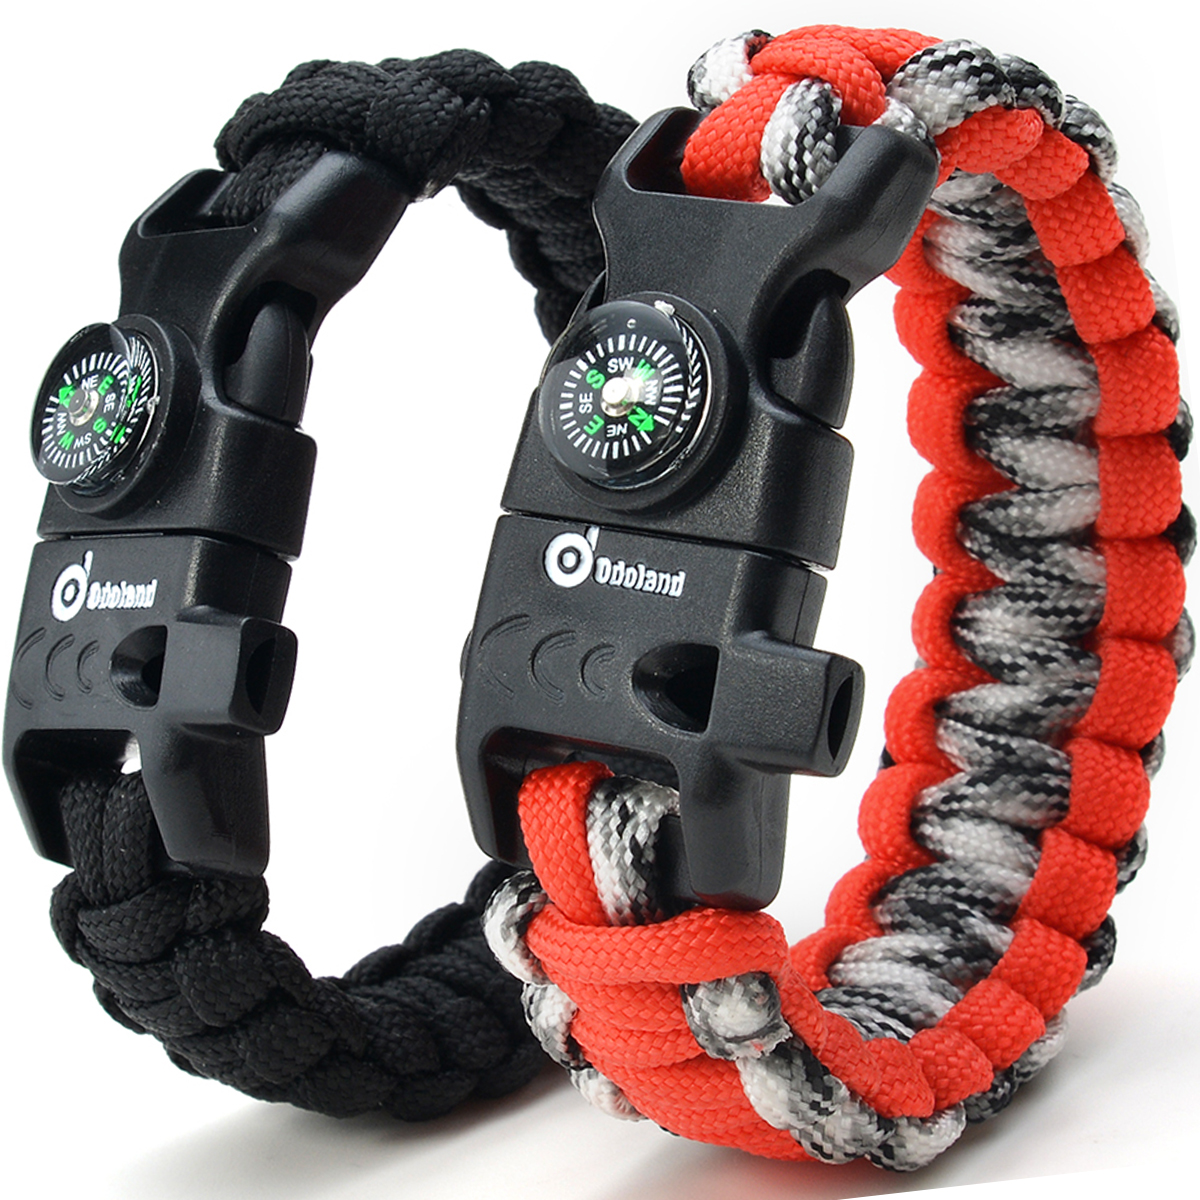 ODOLAND Paracord Bracelet Emergency Survival Cord 2-Peak Series Gear Kit w  Compass Fire Starter Knife Whistle by Odoland